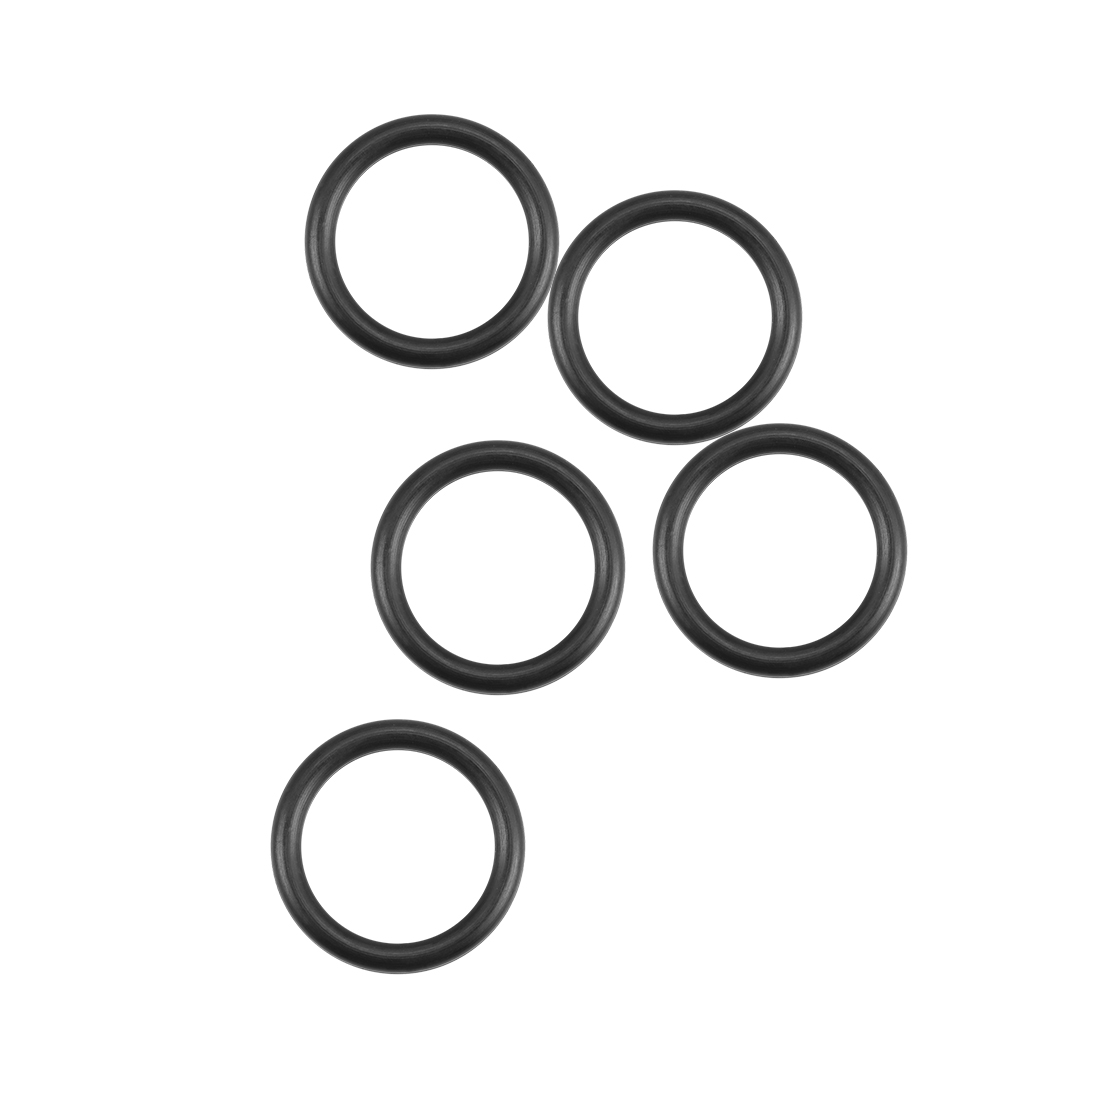 O-Rings Nitrile Rubber 10.6mm x 14.2mm x 1.8mm Round Seal Gasket 5Pcs